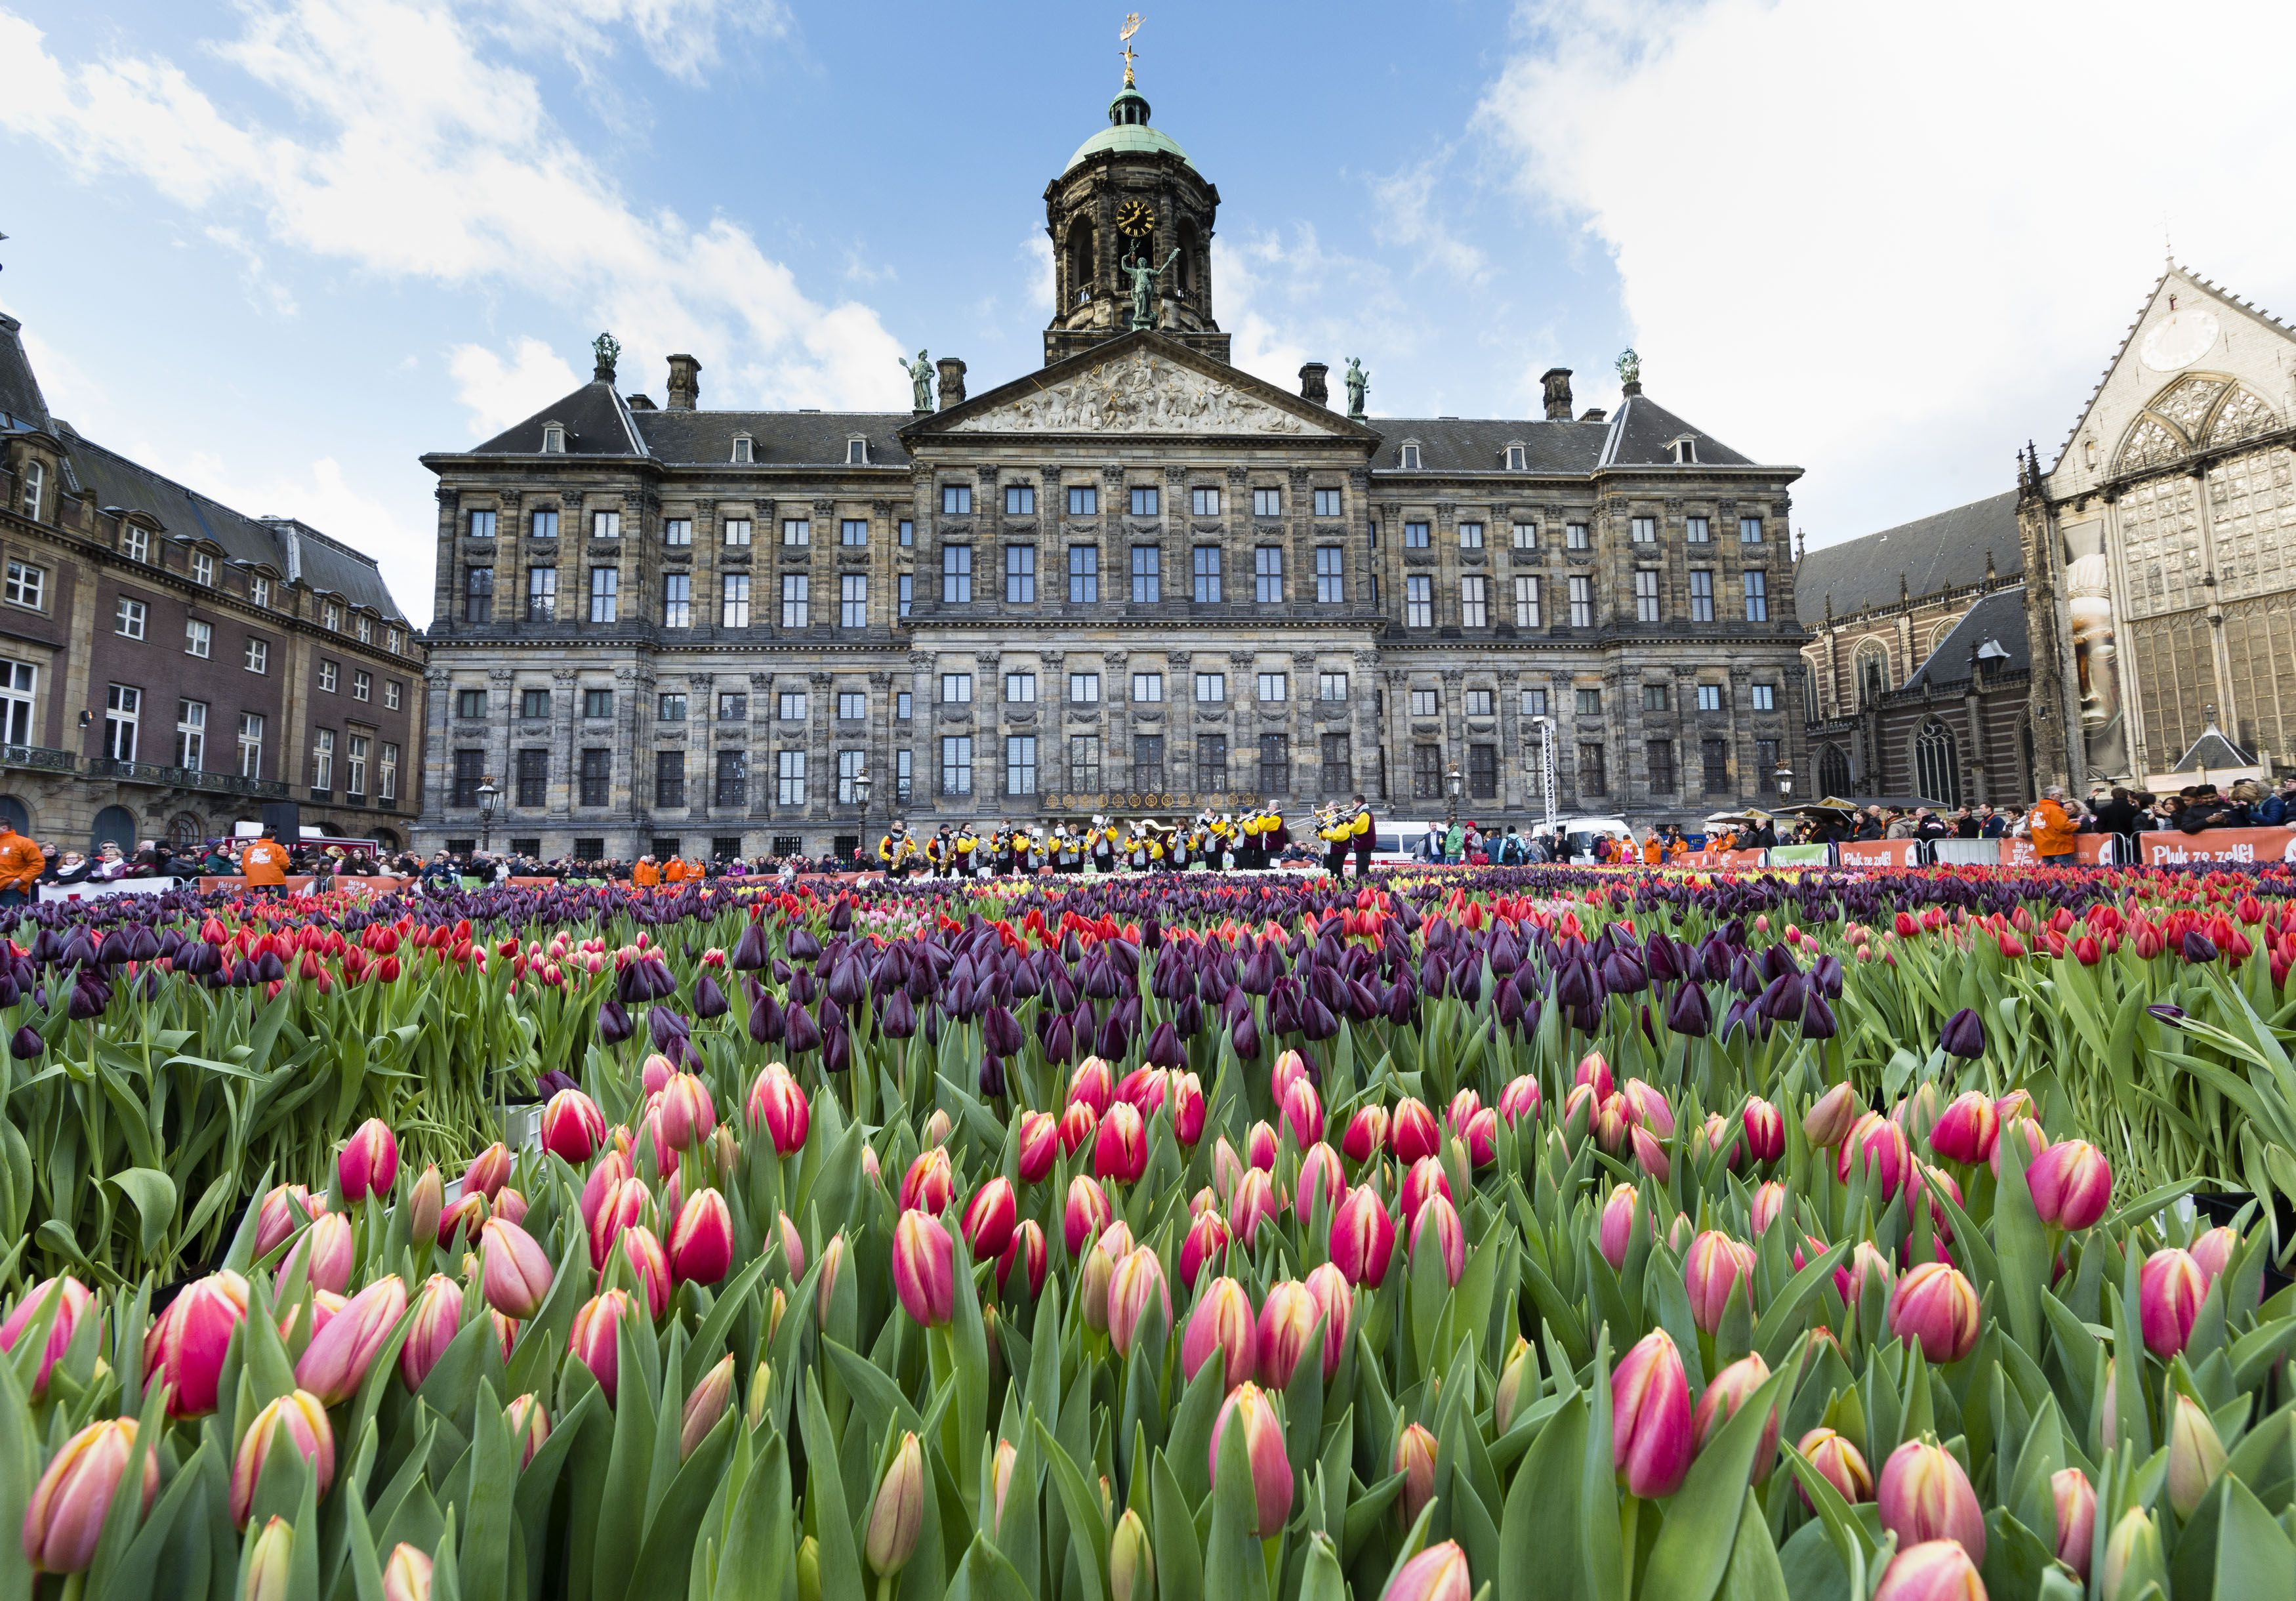 Exterior of the National Palace with tulips in the foreground